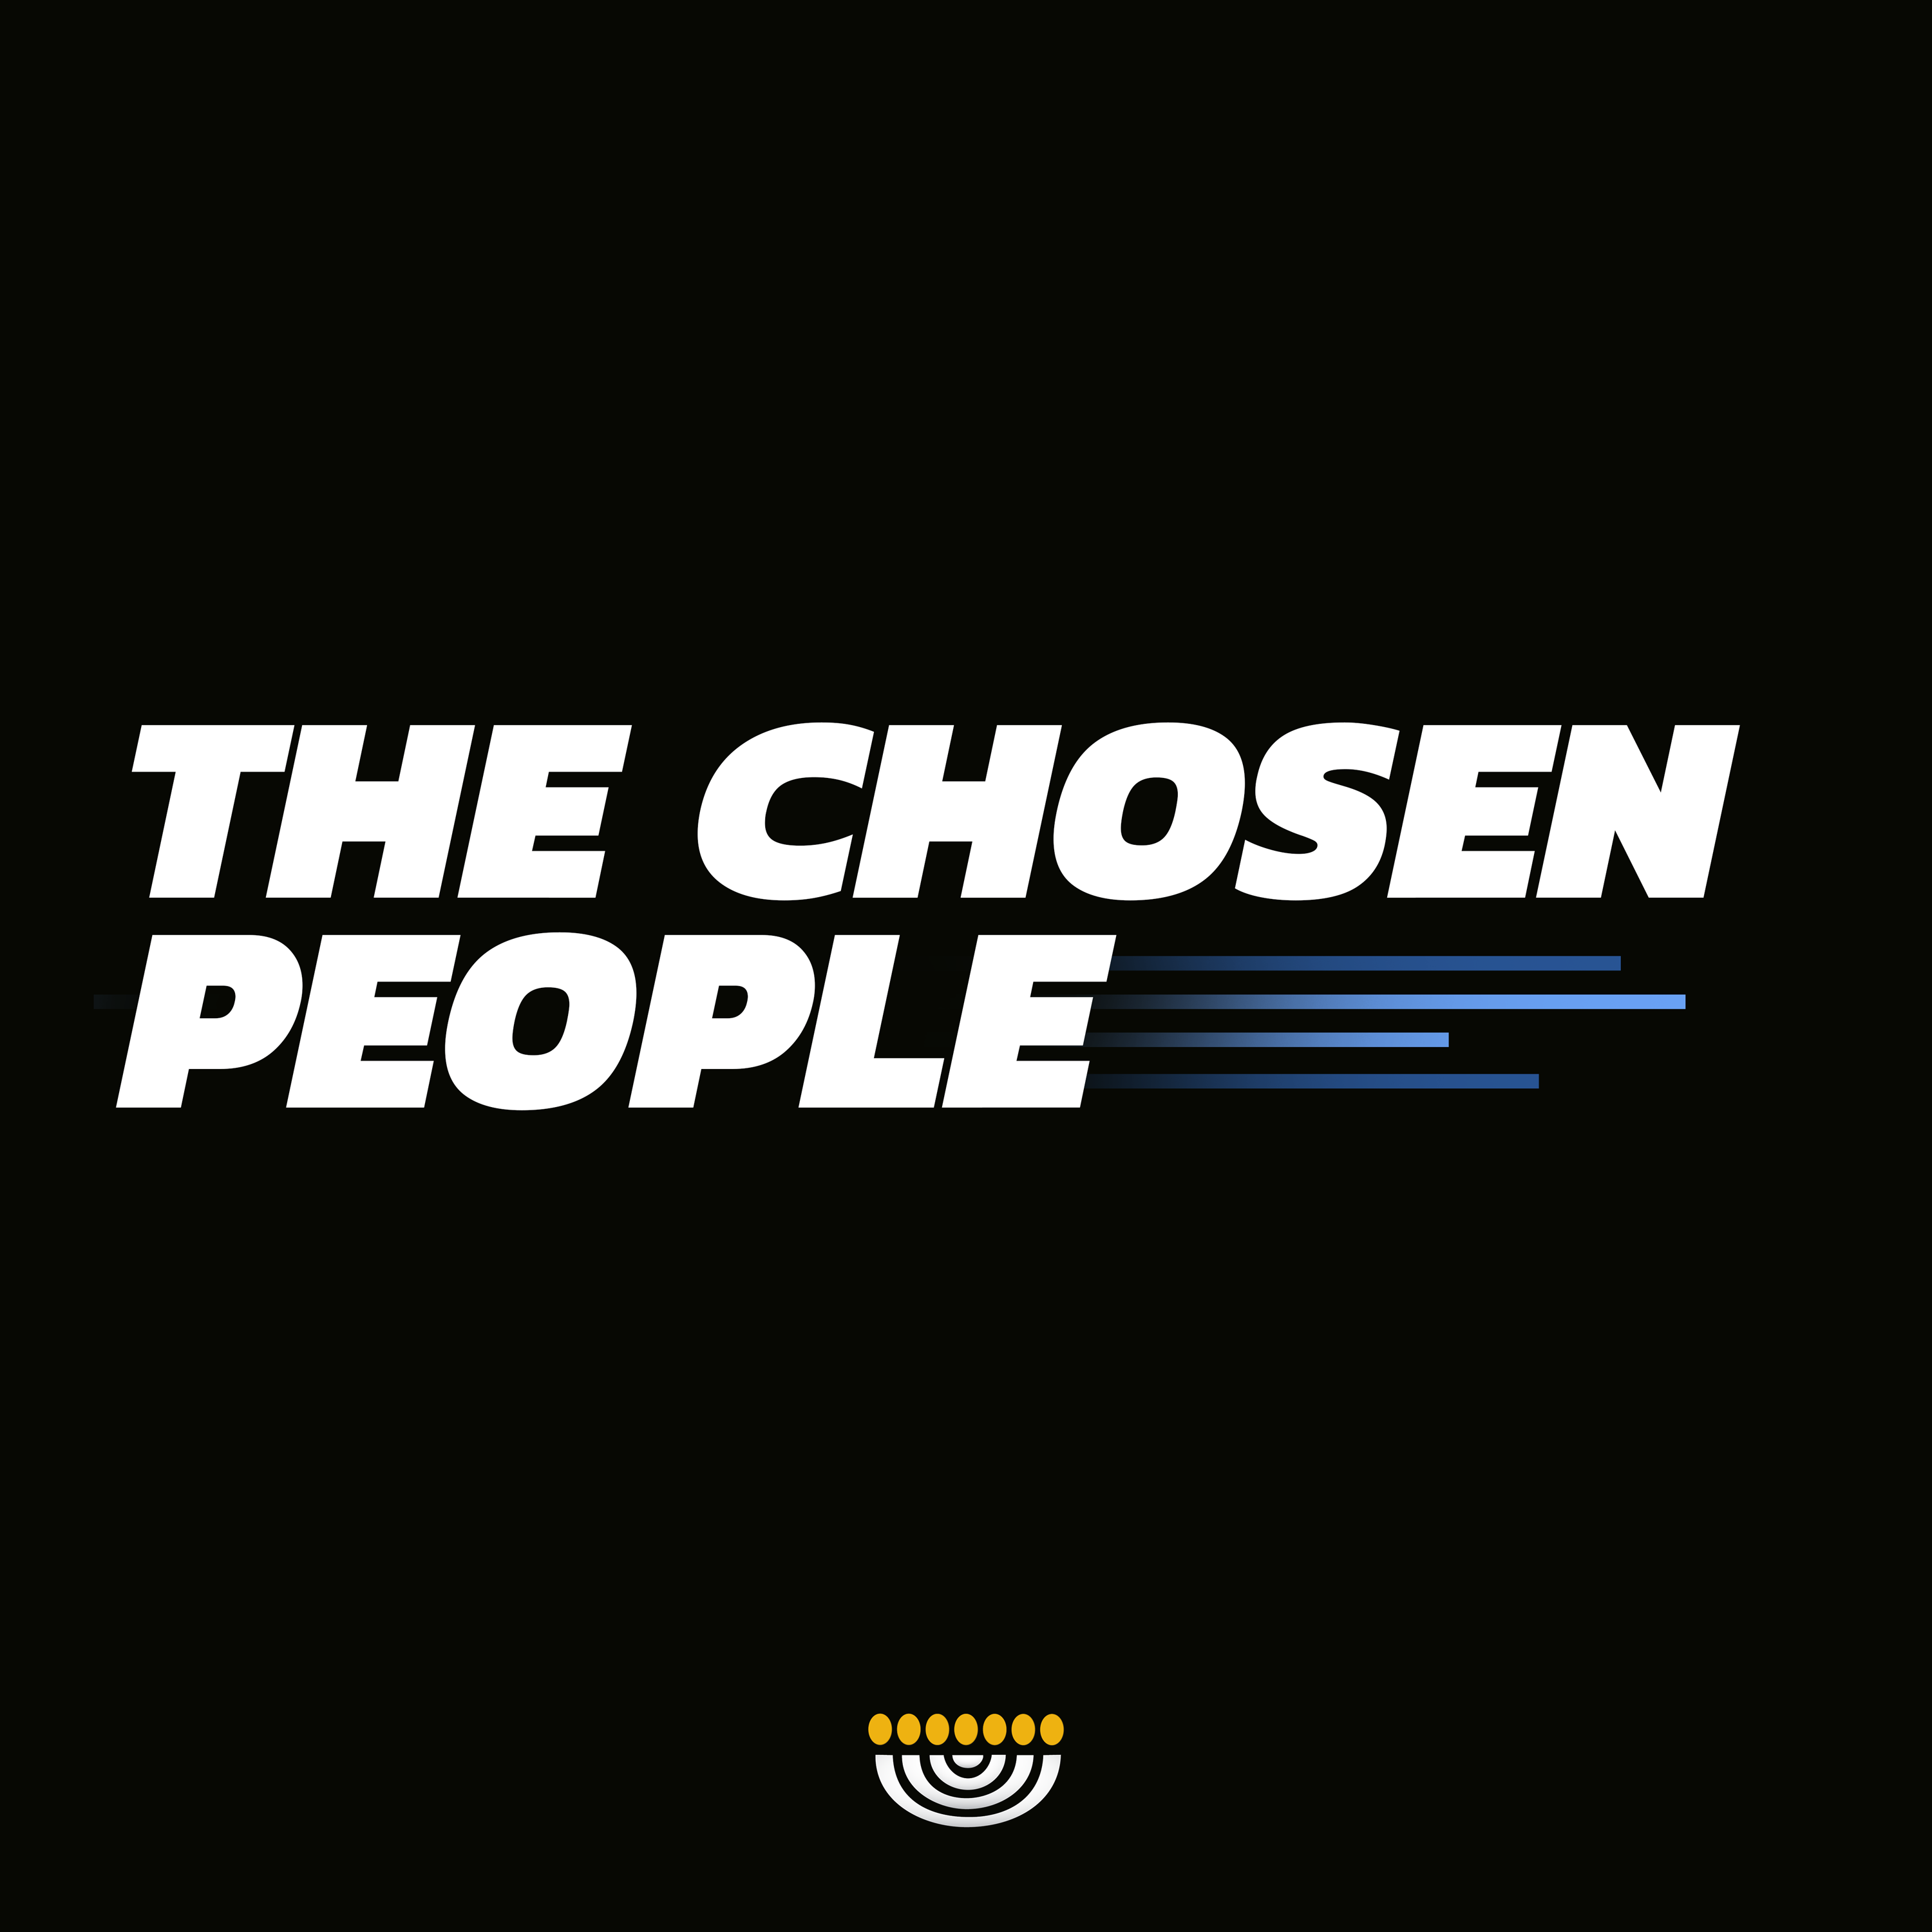 Artwork for podcast The Chosen People